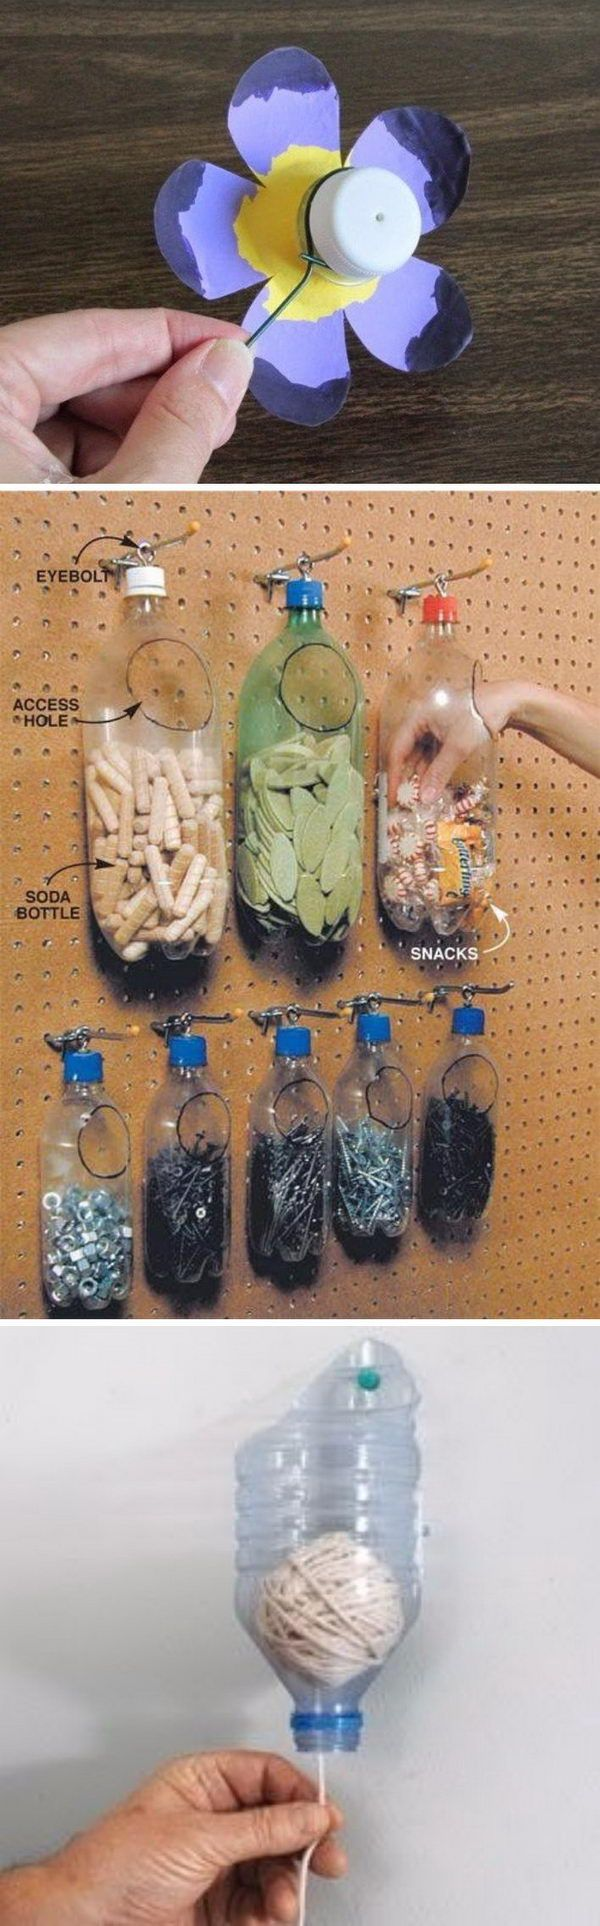 25 Creative Ways To Recycle Old Plastic